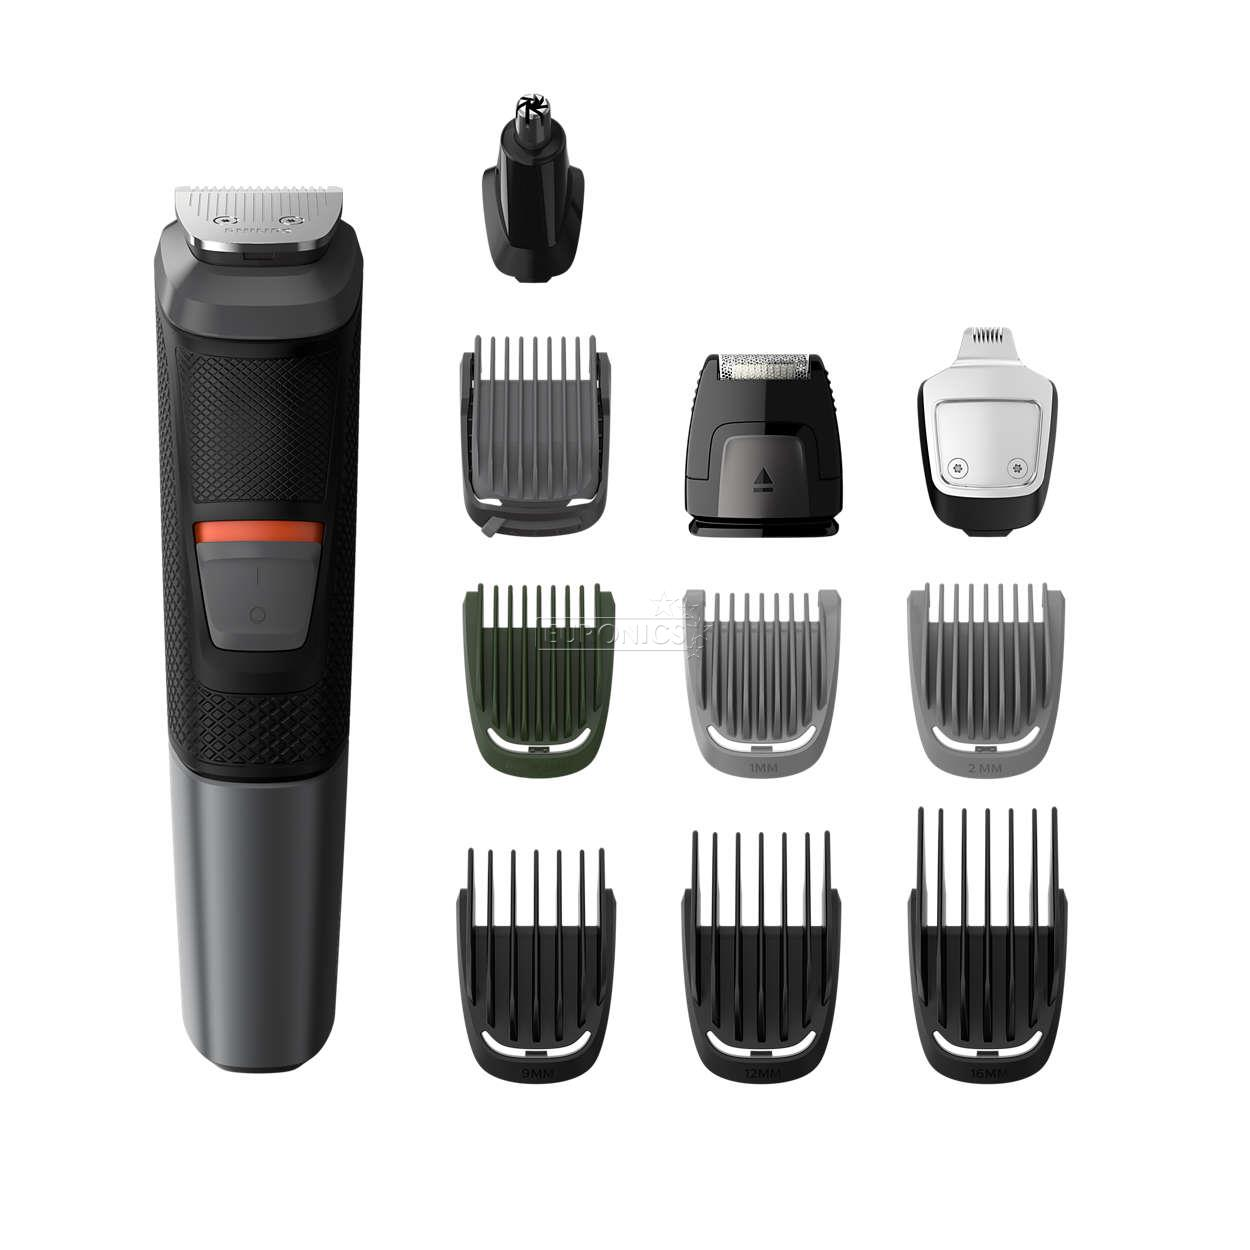 beard trimmer multigroom series 5000 11 in 1 philips mg5730 15. Black Bedroom Furniture Sets. Home Design Ideas